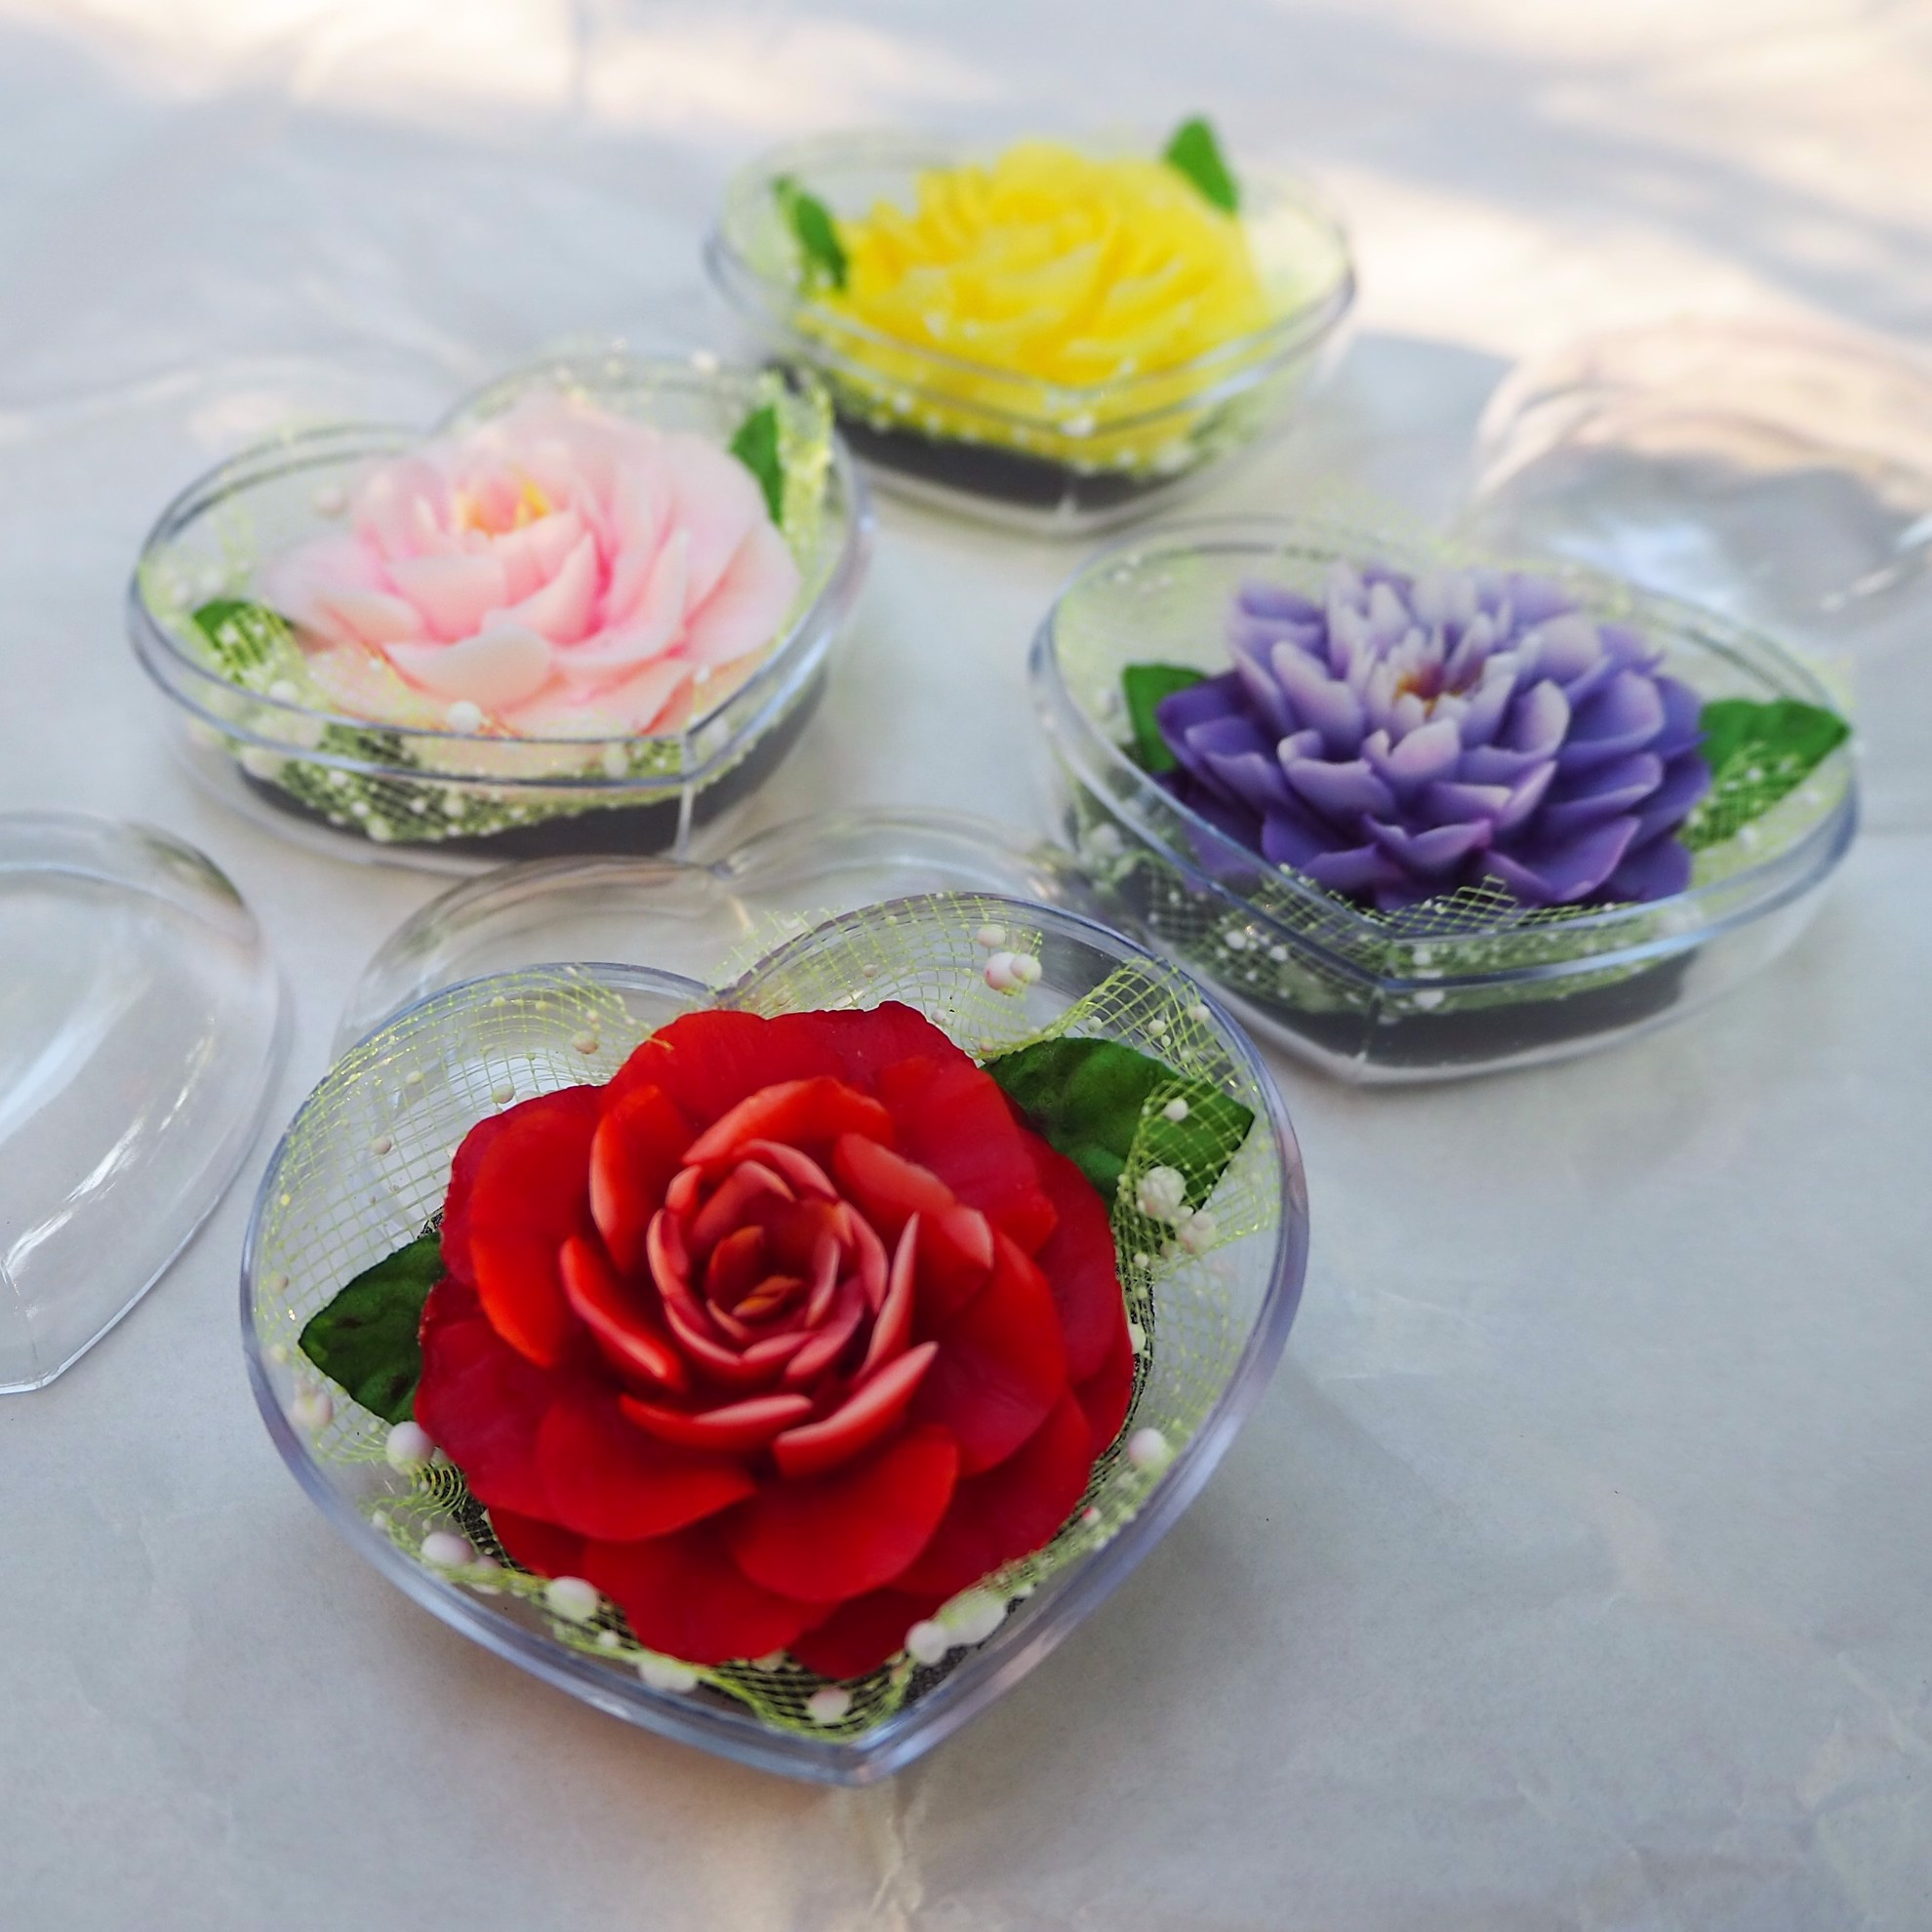 Picture of Blooming Flower Decorative Soaps (4) Hand Carved, Jasmine Aroma Essential Oil, Scented Soap Carving